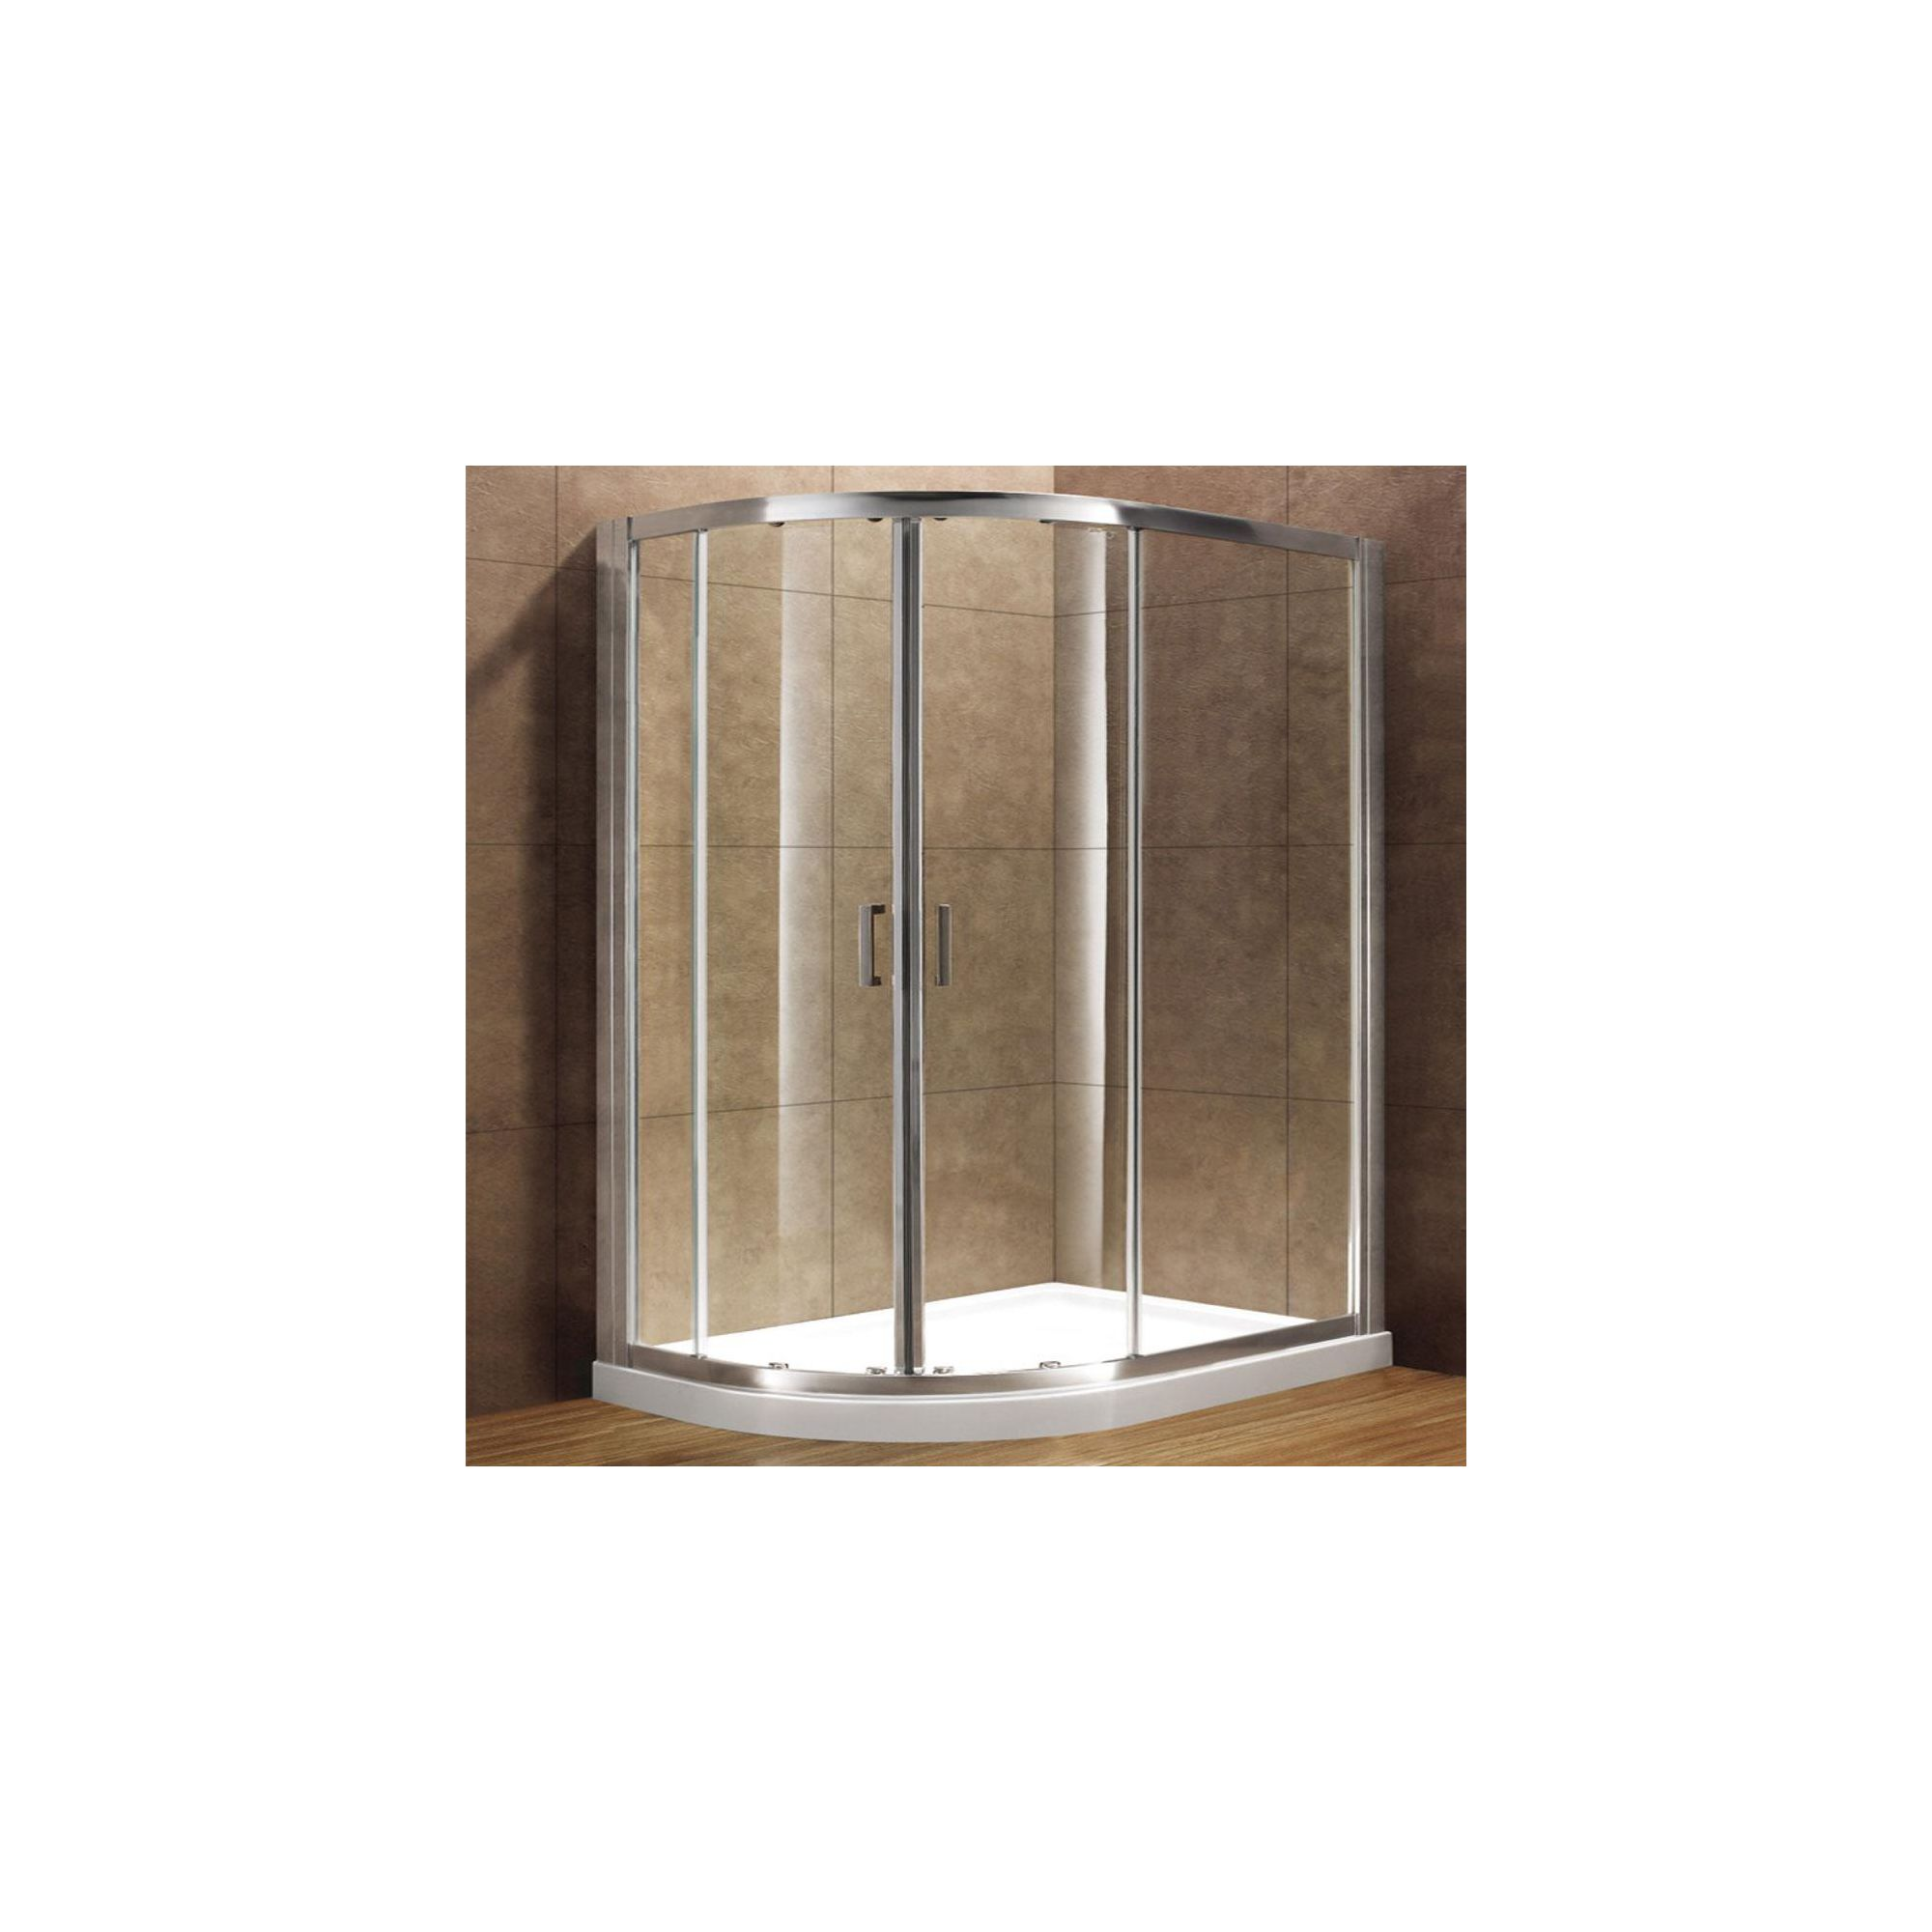 Duchy Premium Double Offset Quadrant Shower Door, 900mm x 800mm, 8mm Glass at Tesco Direct